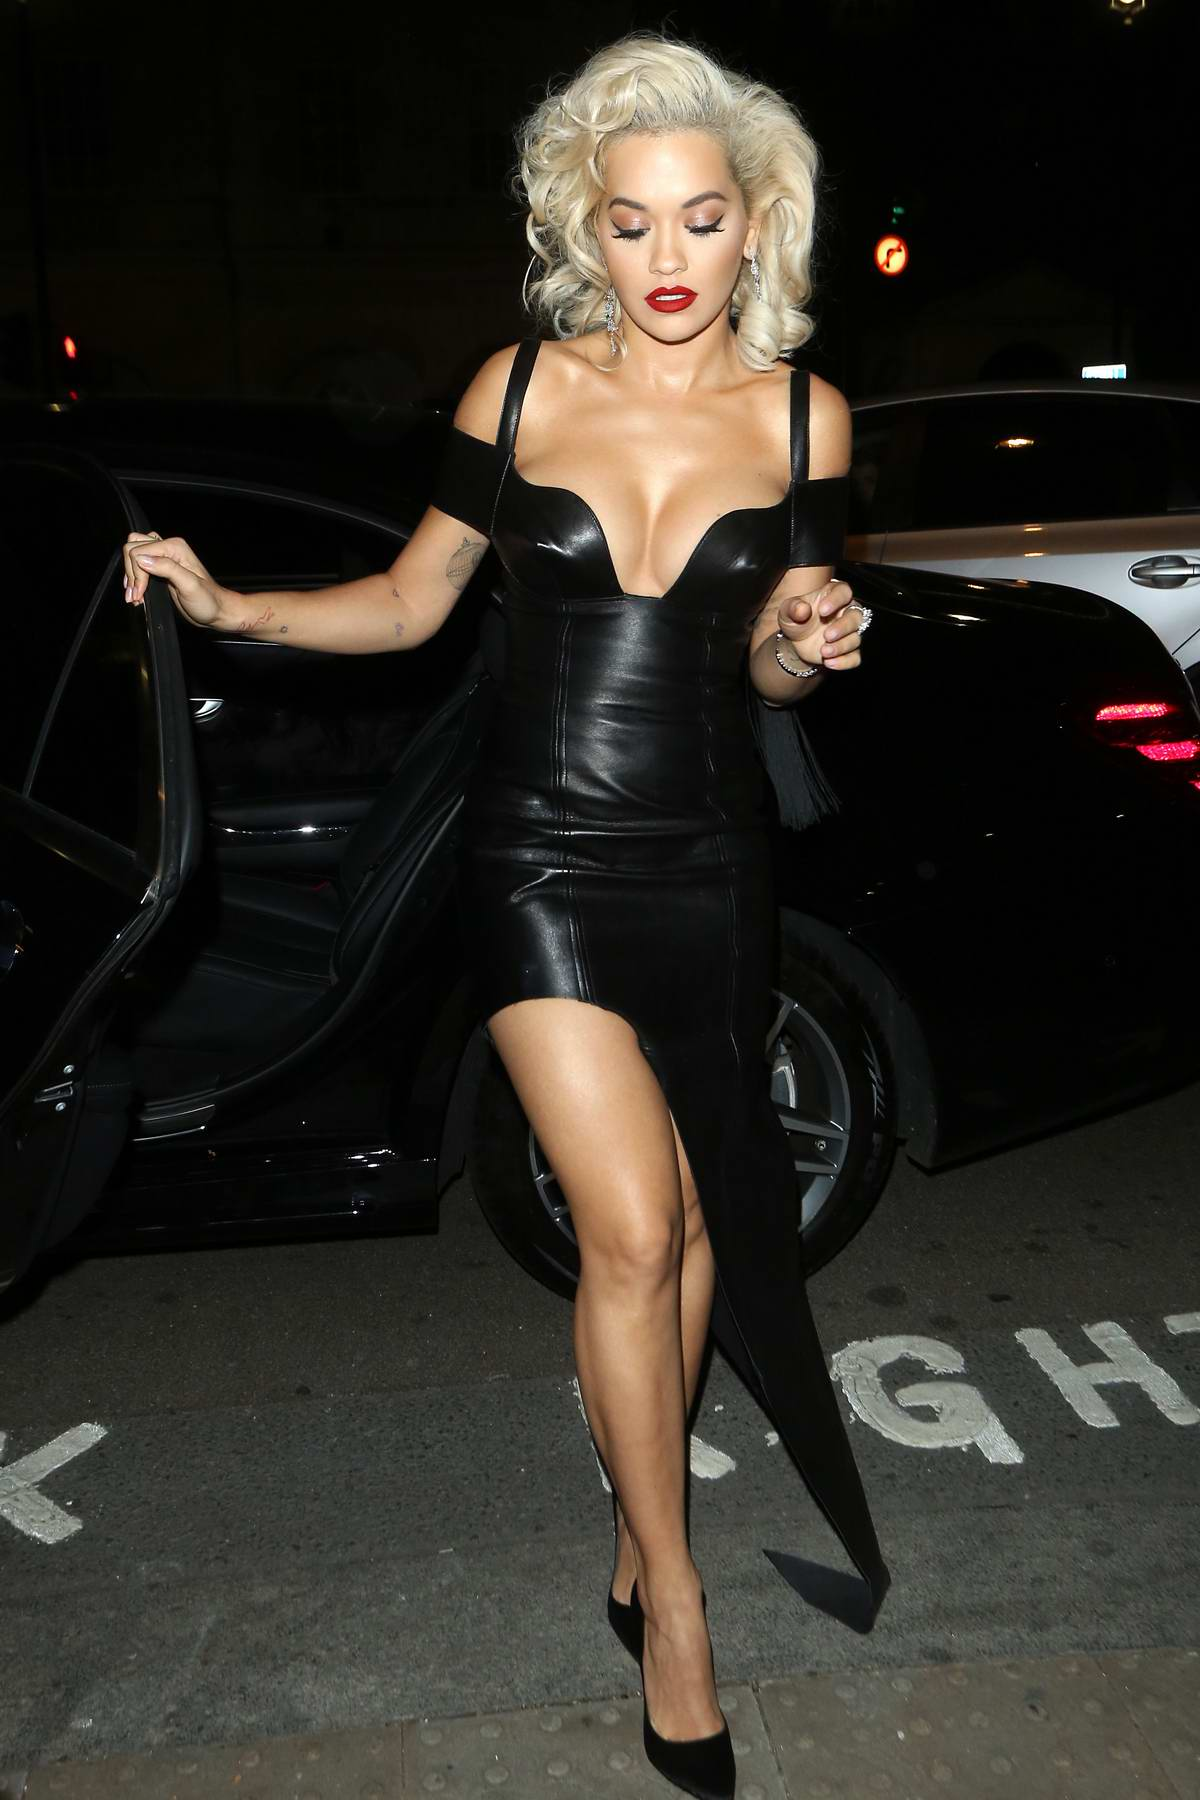 Rita Ora seen arriving in a plunging black dress as she attends the UNICEF Halloween Ball in London, UK